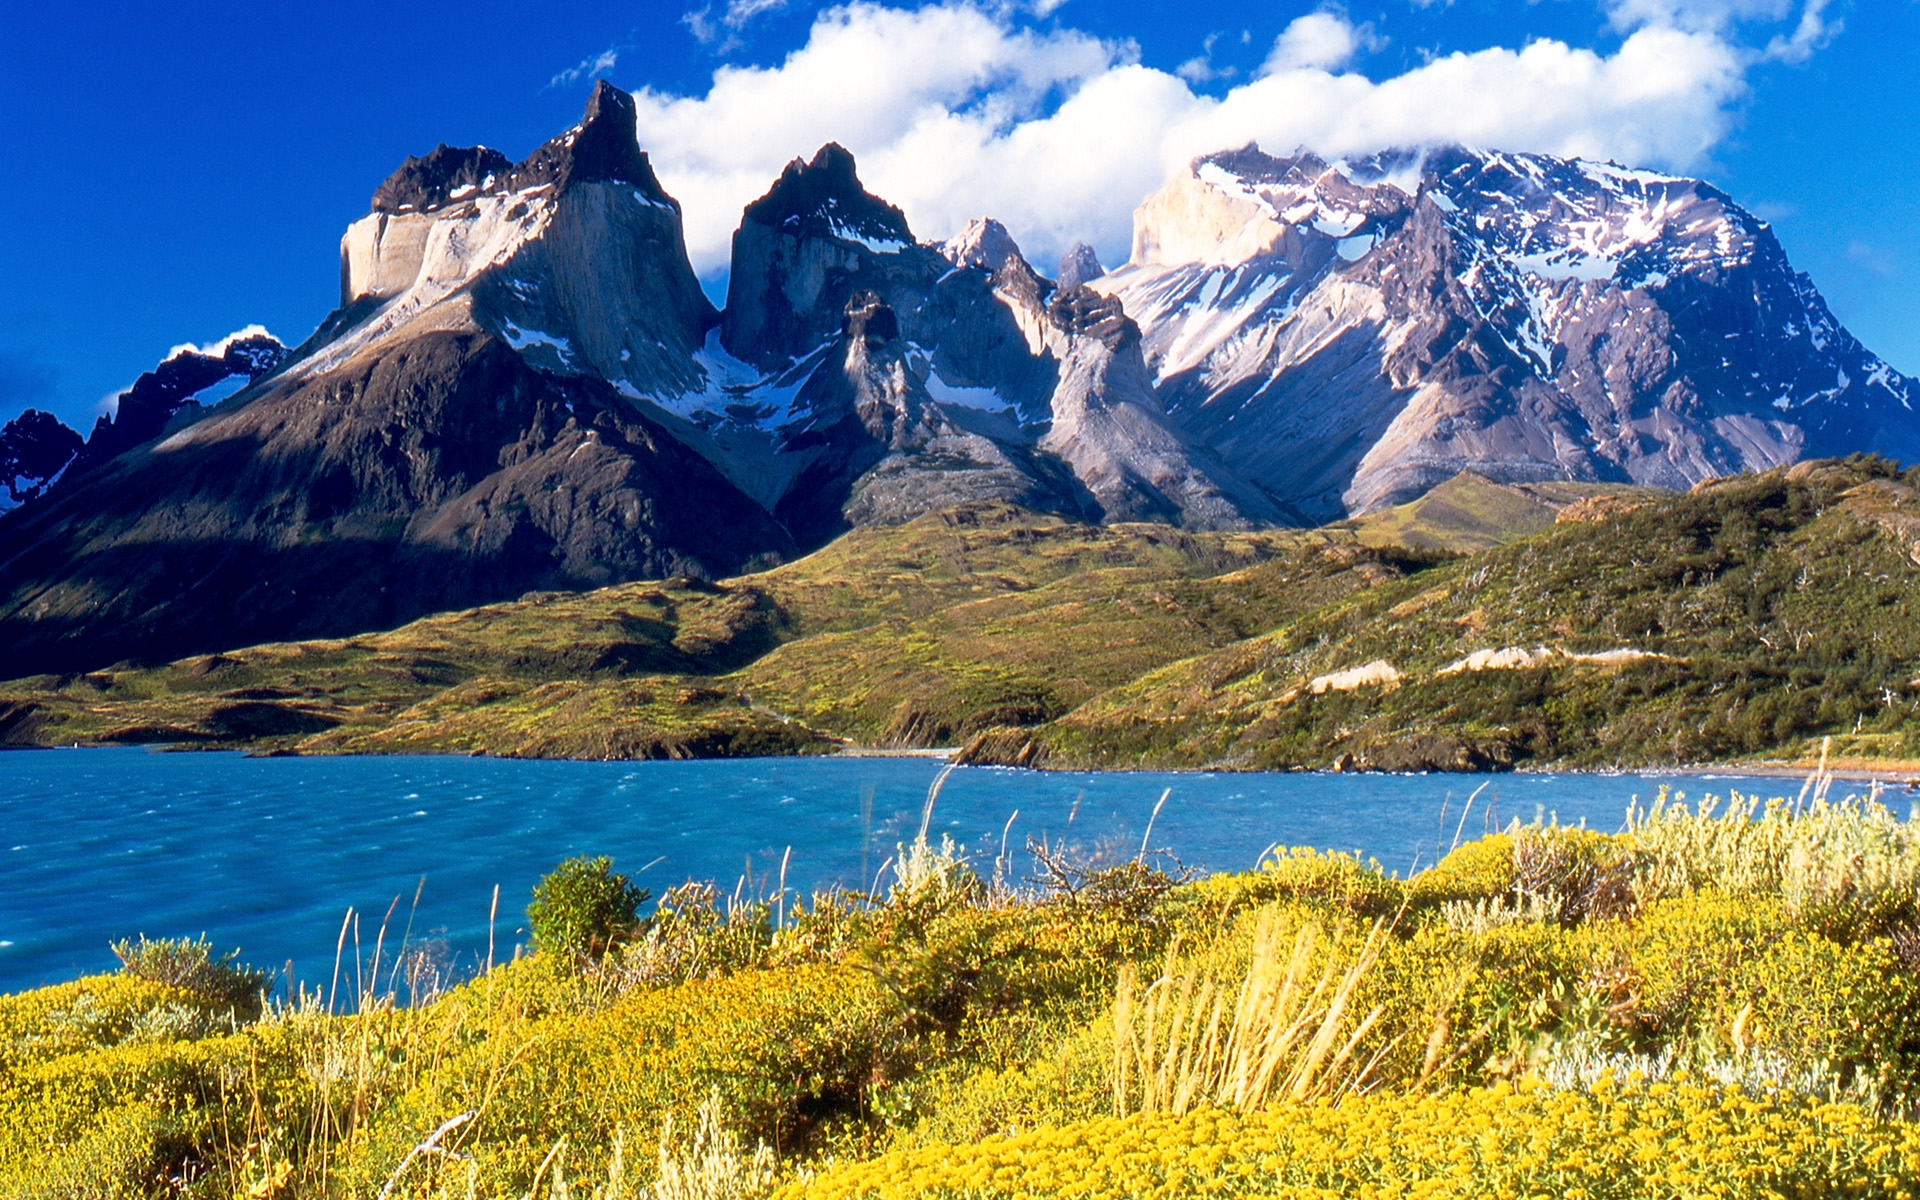 Cuernos_del_Paine_from_Lake_Pehoé.jpg